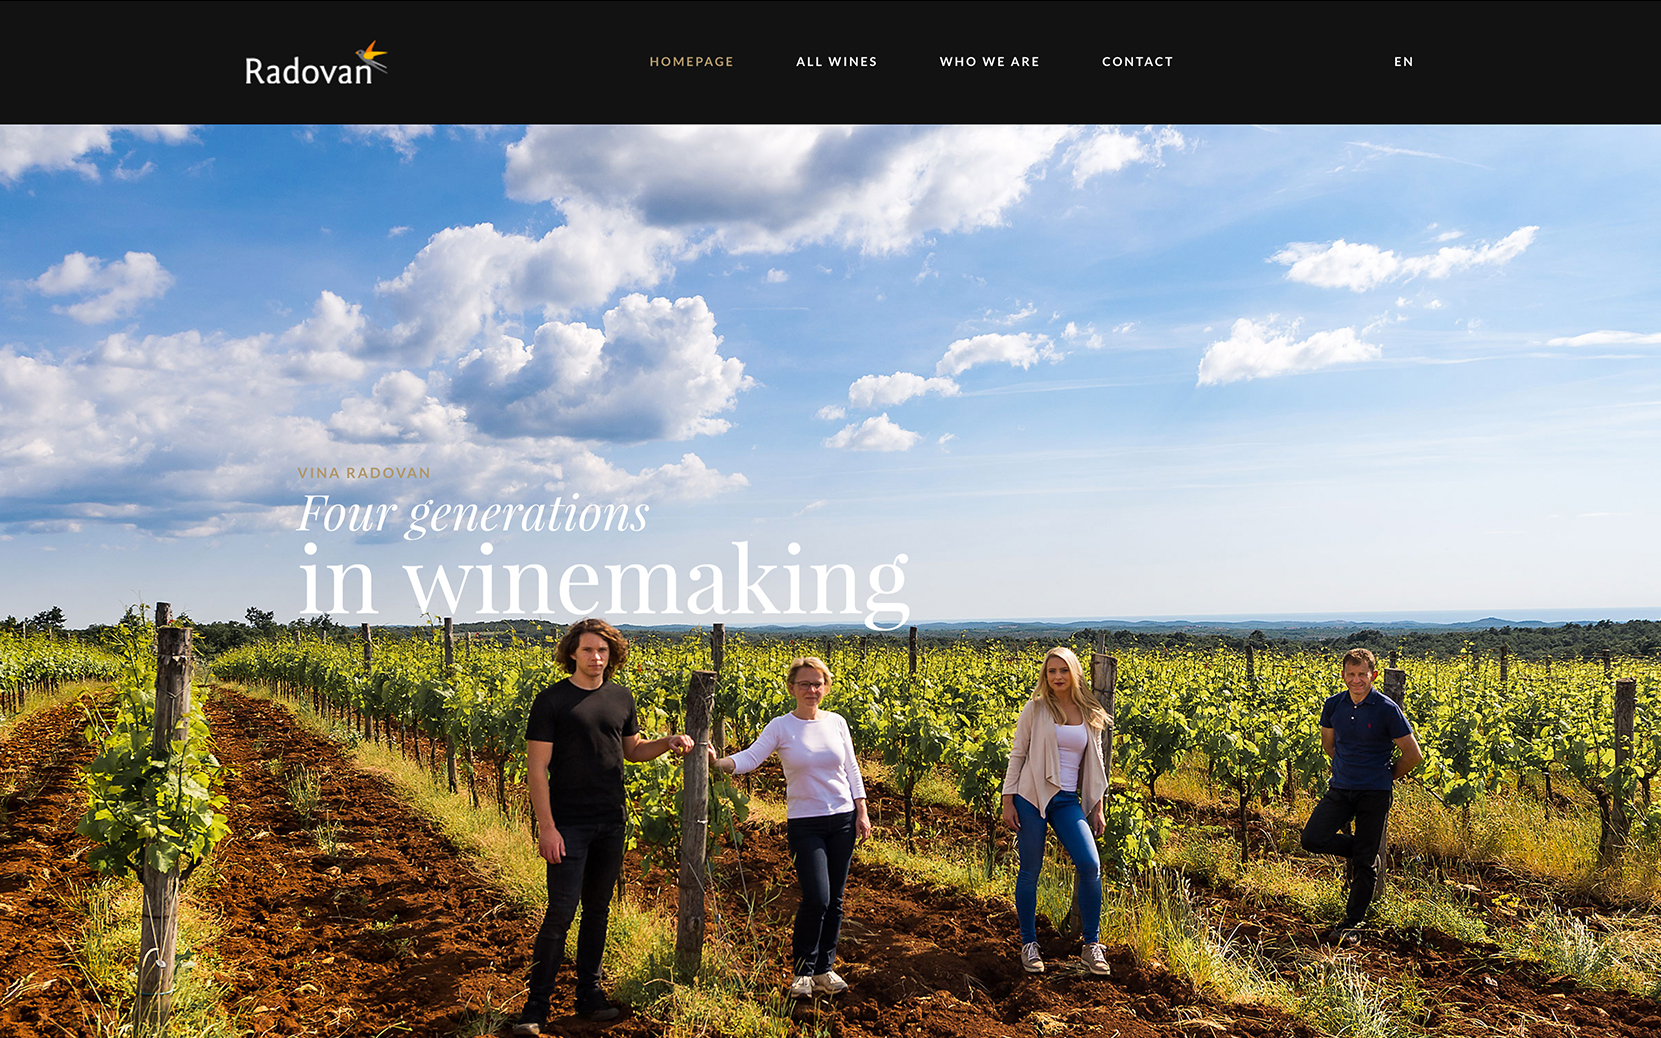 hren | plethora of creativity // Radovan winery digital presence